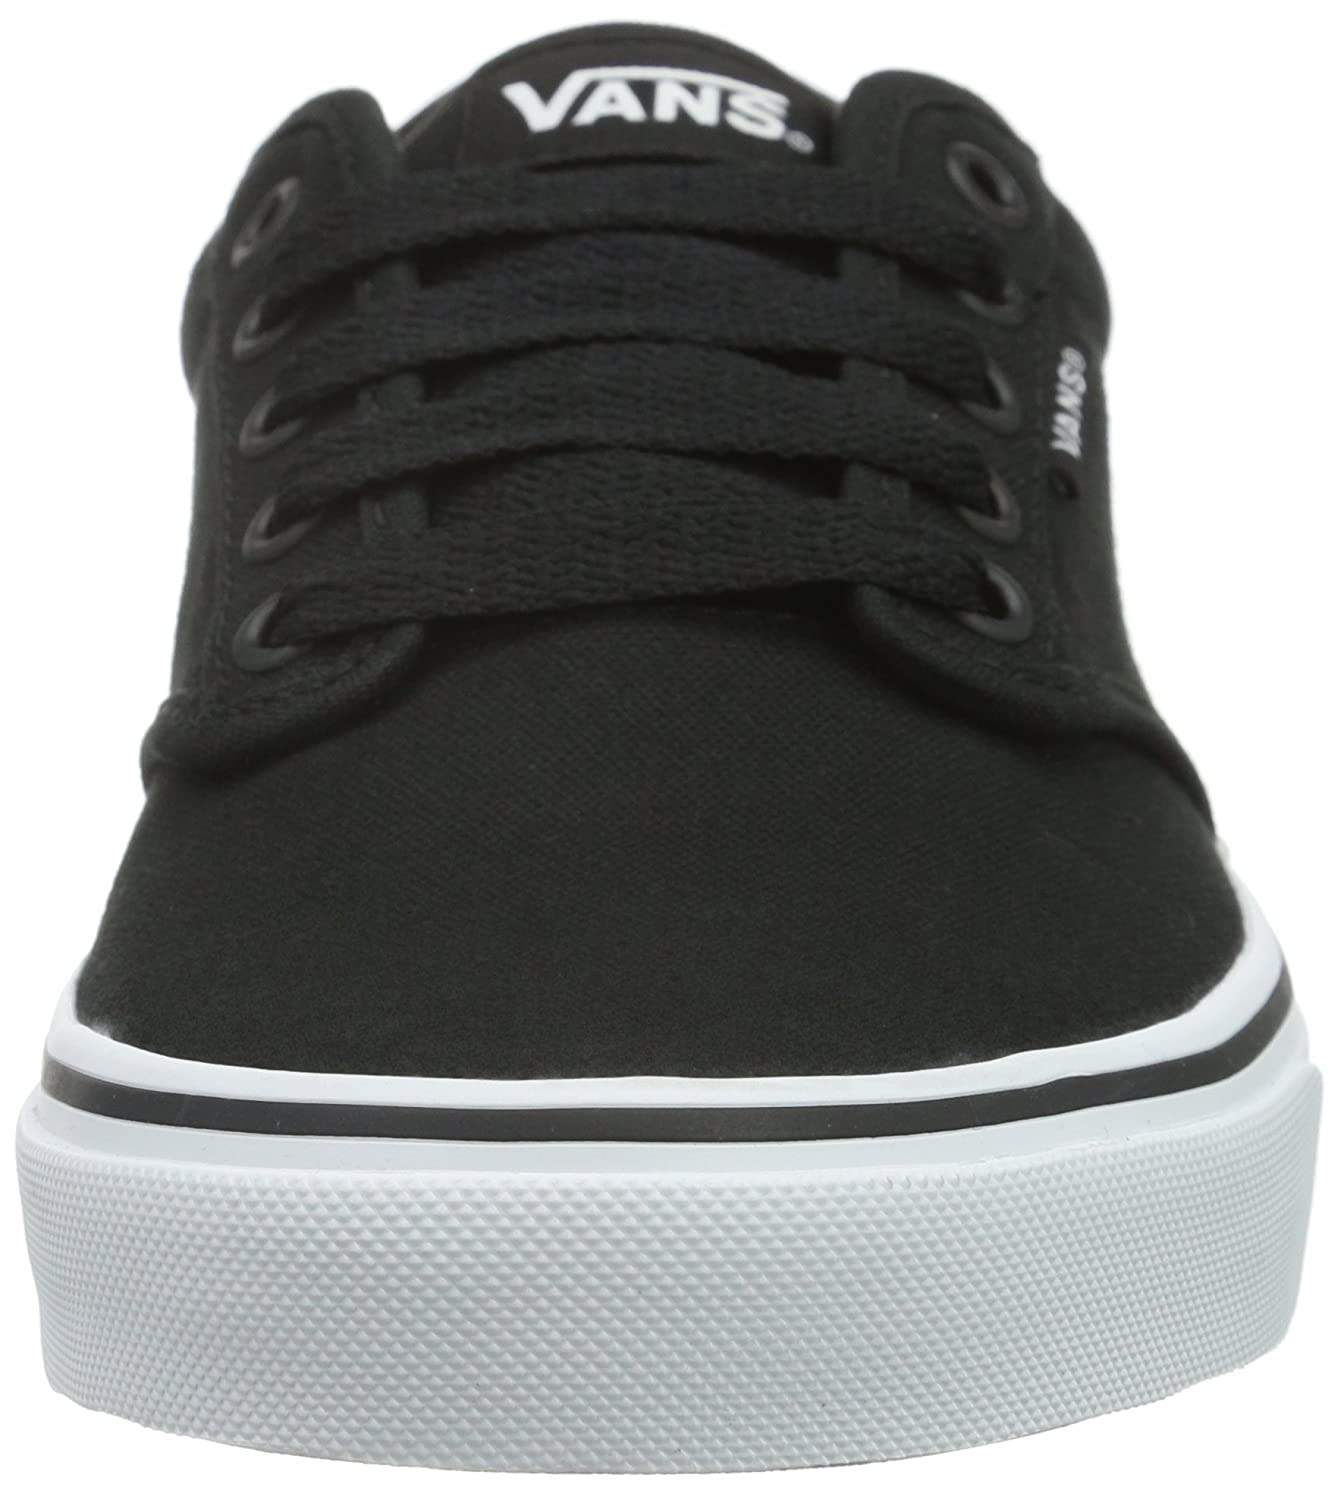 Amazon.com | Vans VTUY187 Mens Atwood (Canvas) Skate Shoes, Black/White, 10.5 D(M) US | Fashion Sneakers